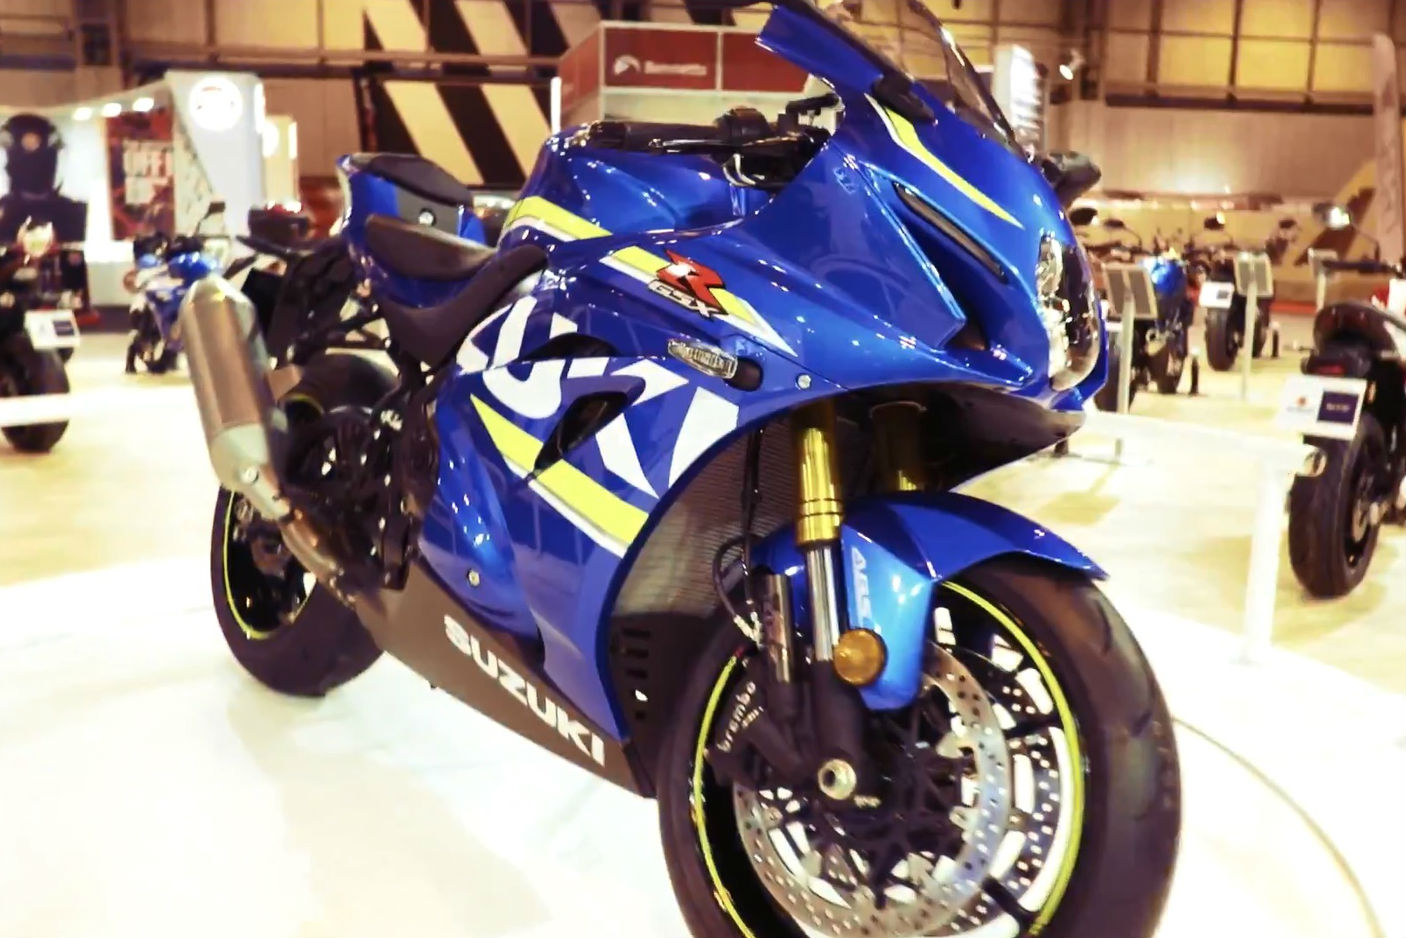 Motorcycle live 2015 video round-up